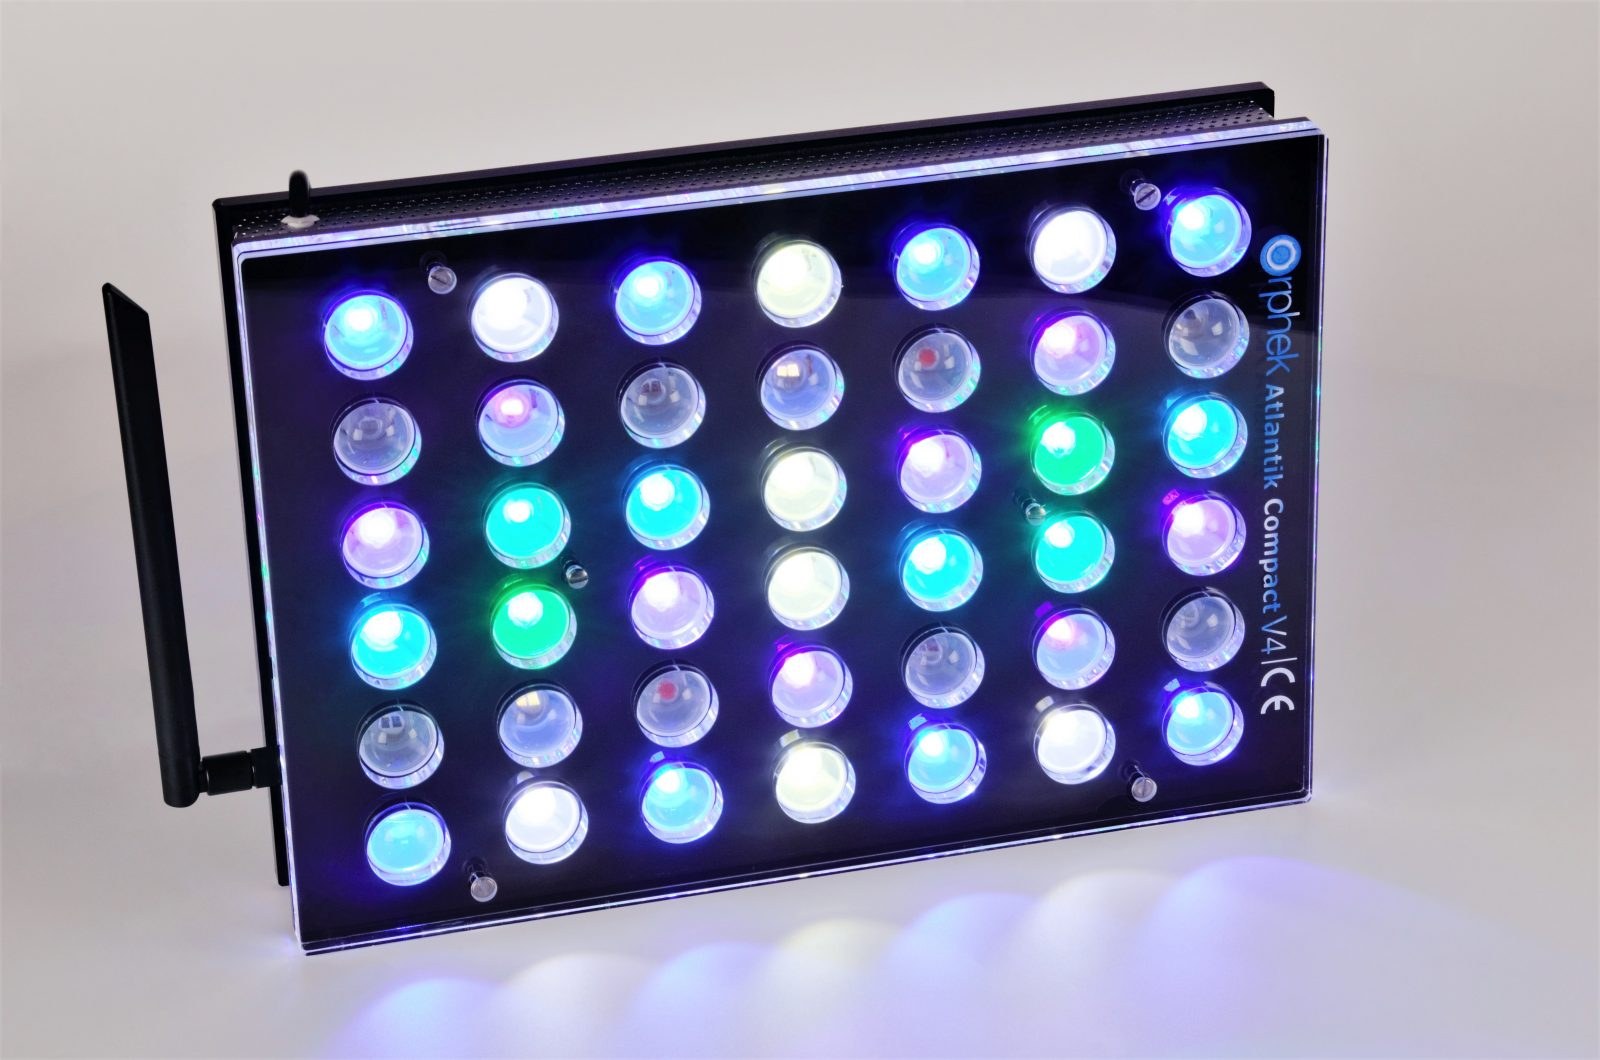 Orphek-Aquarium-LED-Lighting-Atlantik -Compact-V4-licht -on-kanaal 1 + 2 + 3